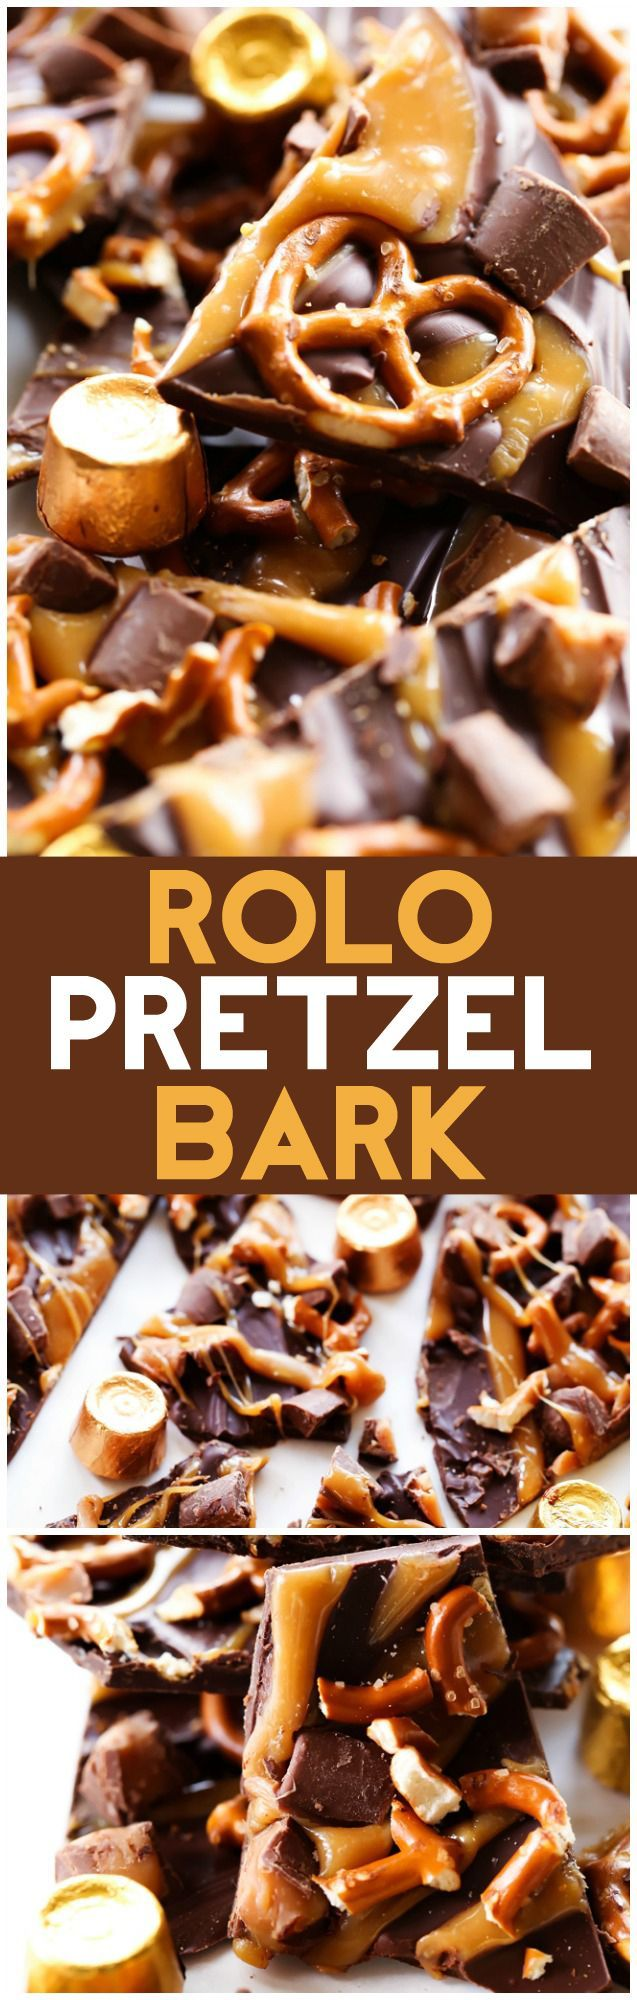 ROLO Pretzel Bark... An extremely simple yet tasty chocolate-caramel treat that only takes a fews to put together and tastes absolutely incredible! It is the perfect combo of sweet and salty! #sponsored